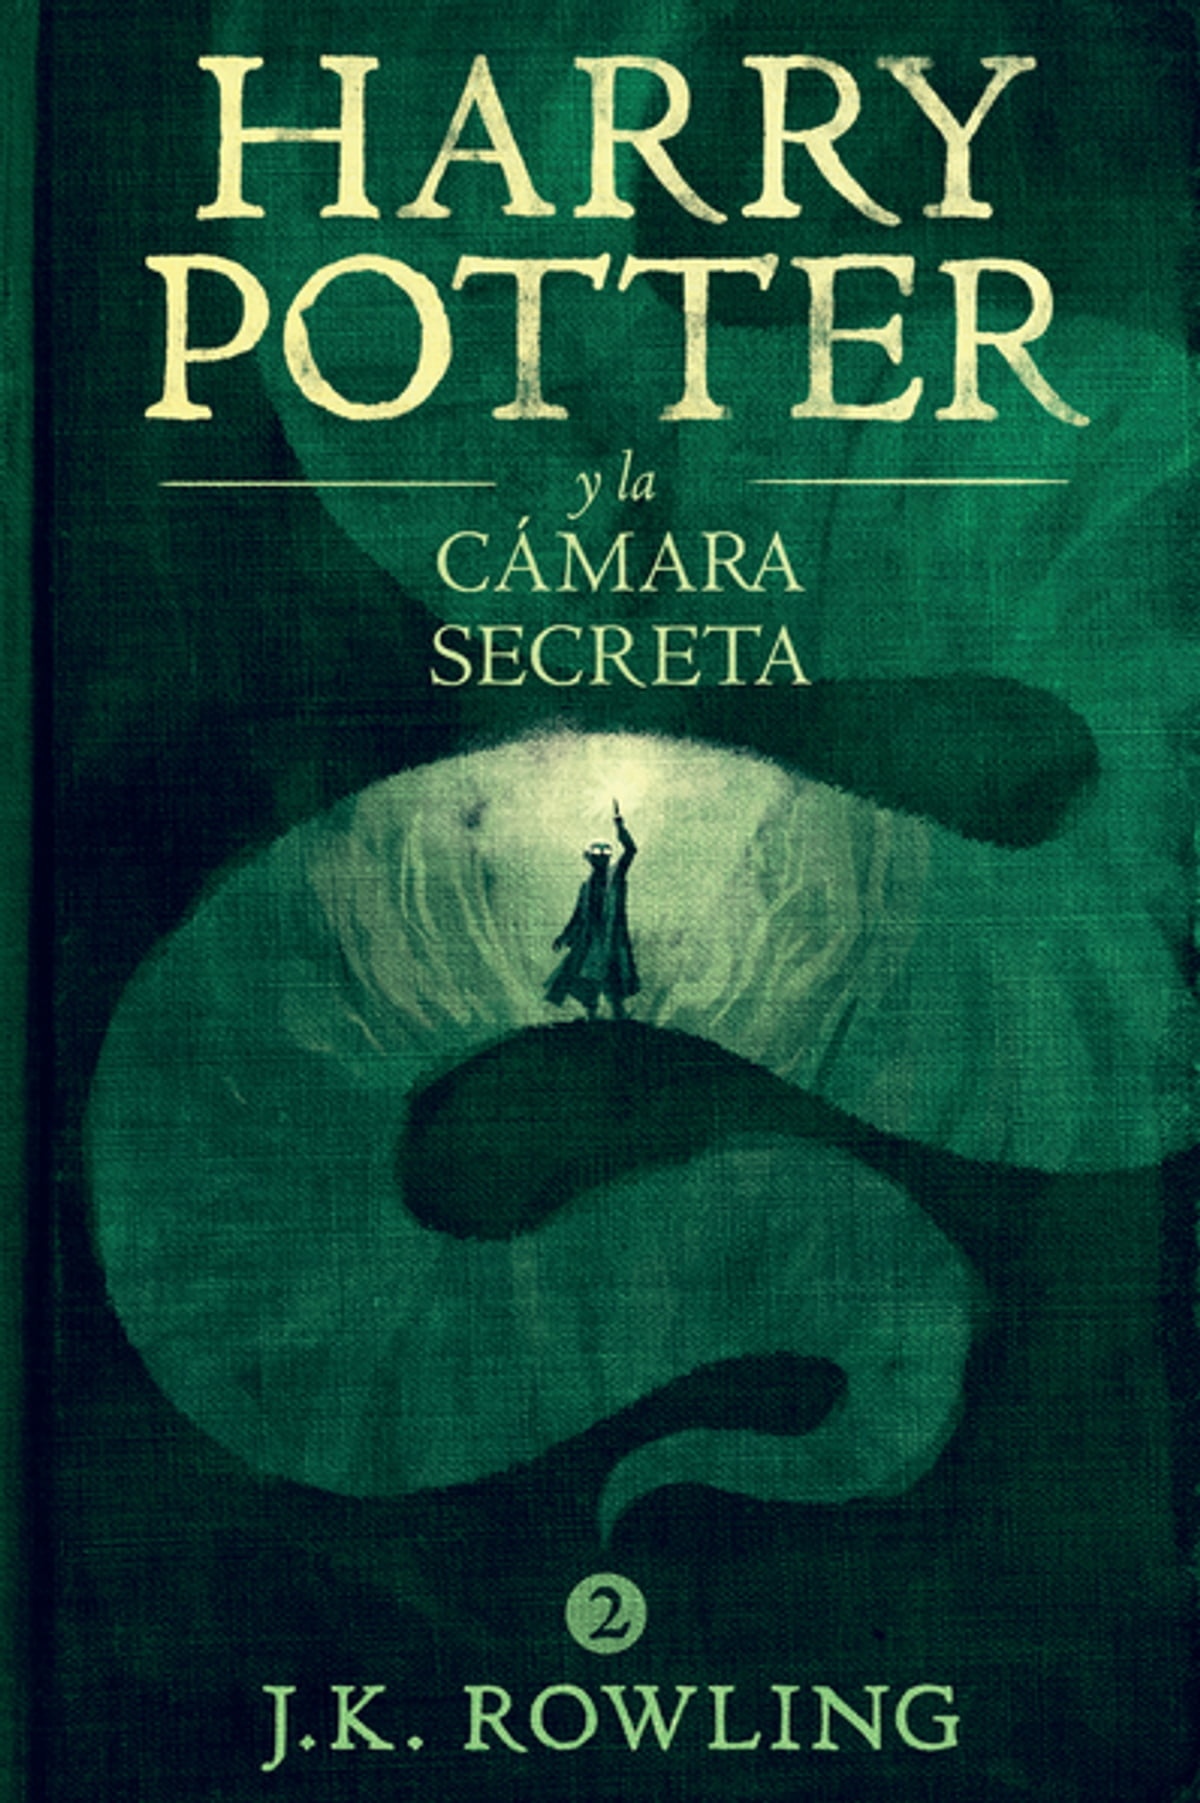 Leer Libros De Harry Potter Online Gratis Harry Potter Y La Cámara Secreta Ebooks By J K Rowling Rakuten Kobo